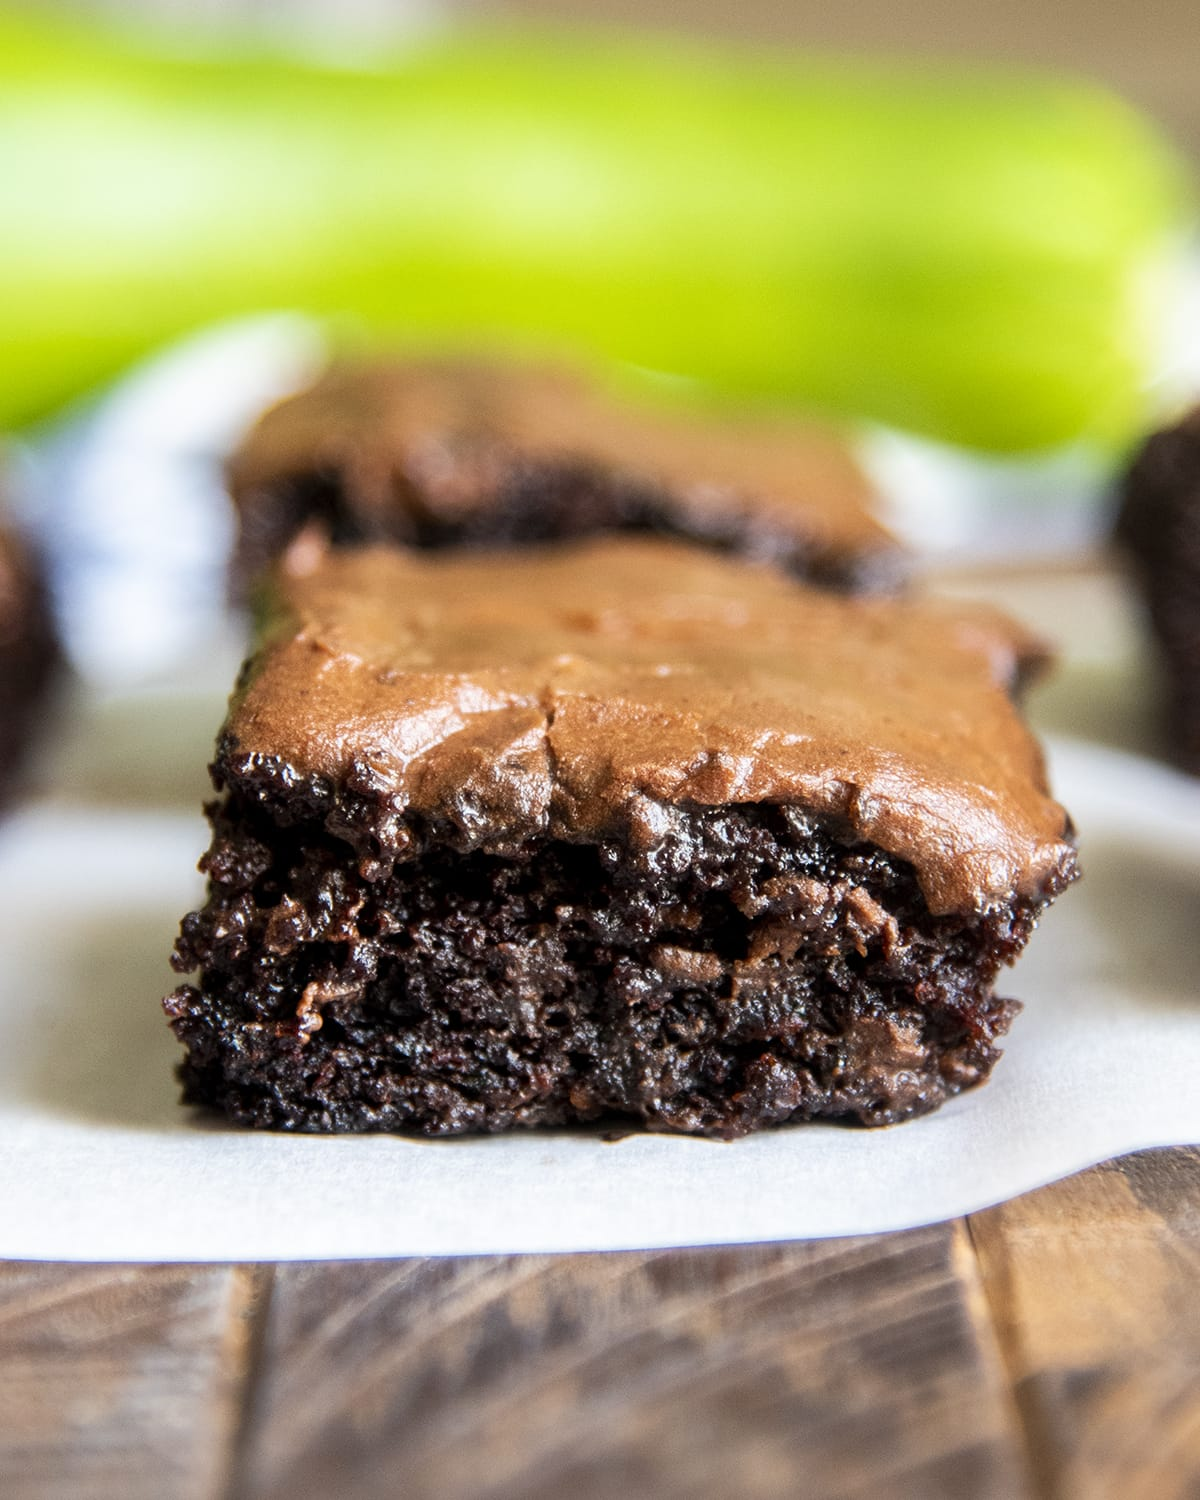 A chocolate zucchini brownie topped with chocolate icing.